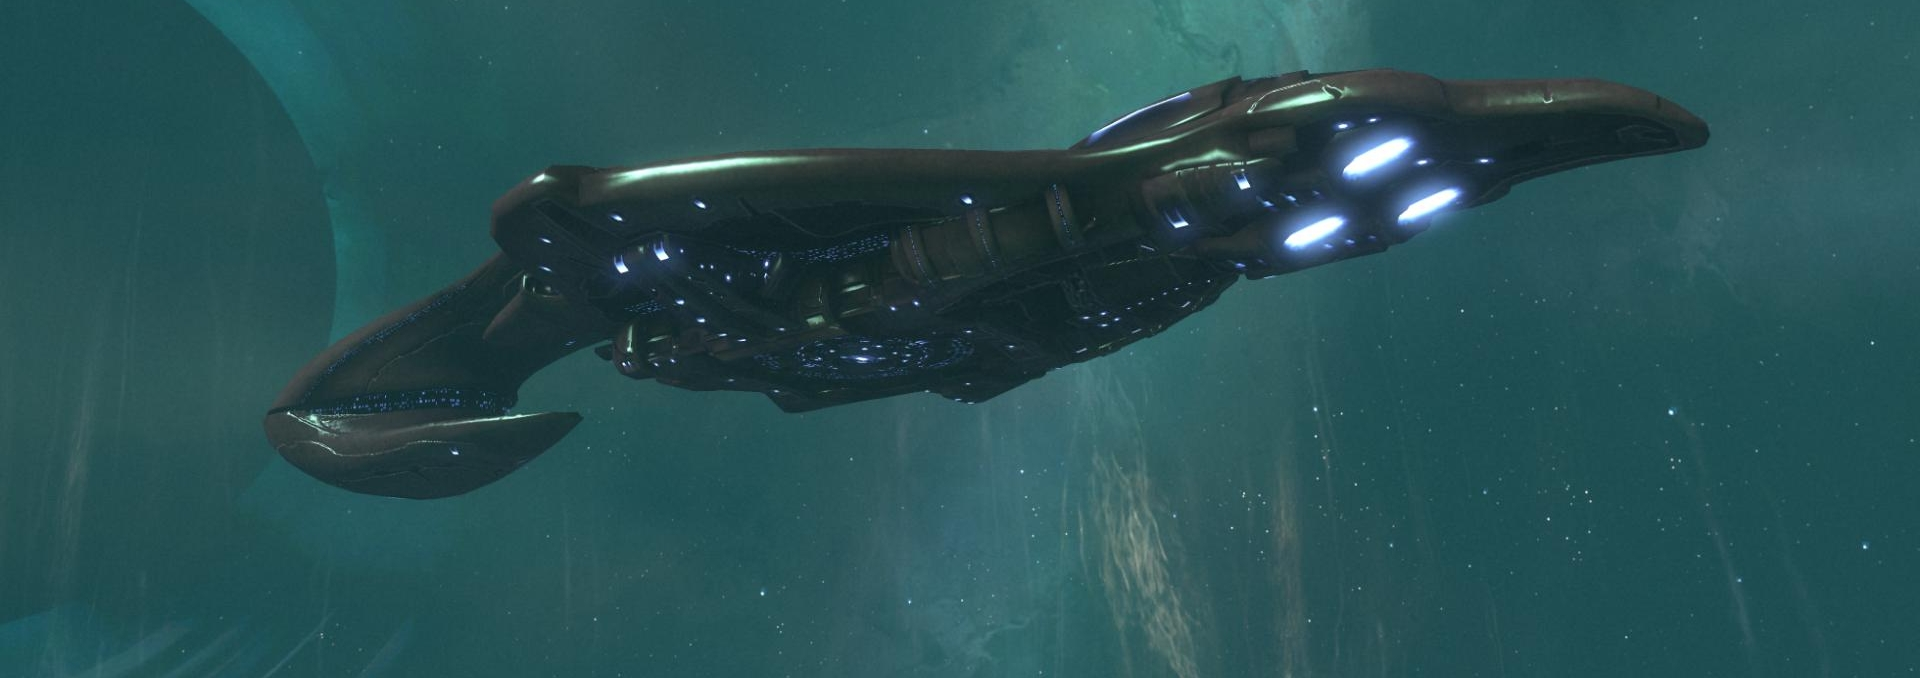 LONG NIGHT OF SOLACE - TYPE: CSO-class supercarrierCOMMISSION DATE: UnknownDESTRUCTION DATE: August 14th, 2552